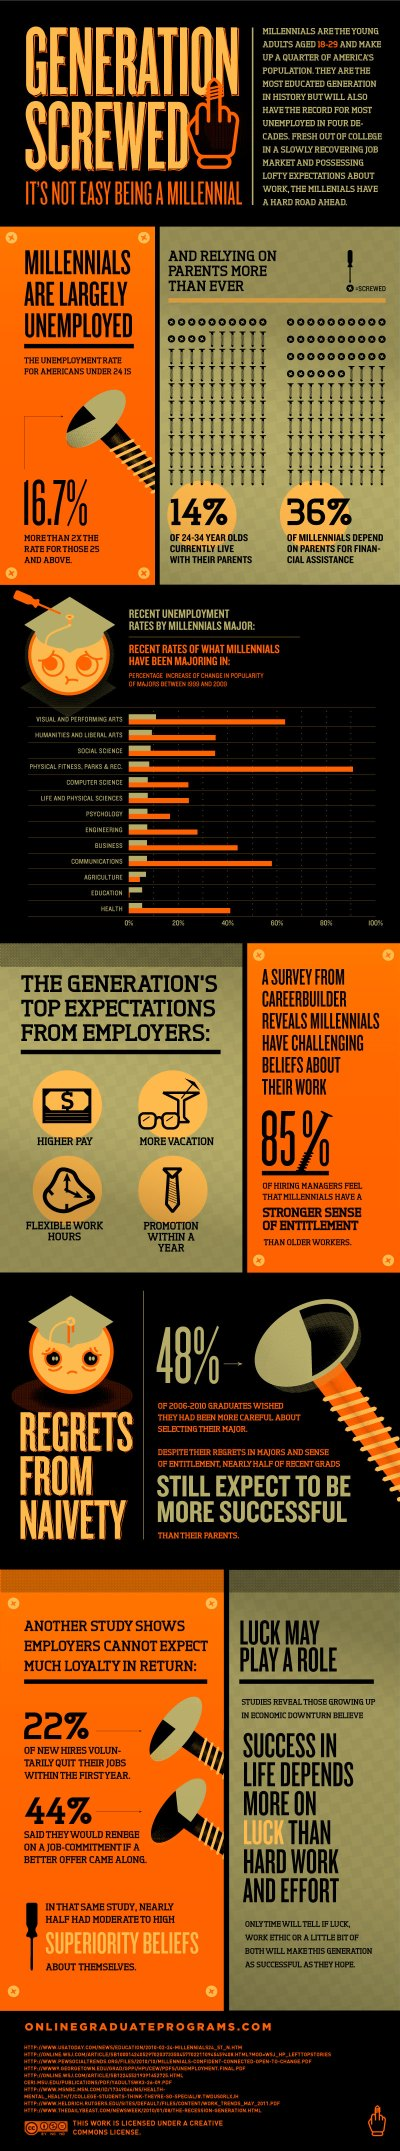 The Millennial Cohort: A Look at Their Present Predicament, Their Future Economic Prospects ...